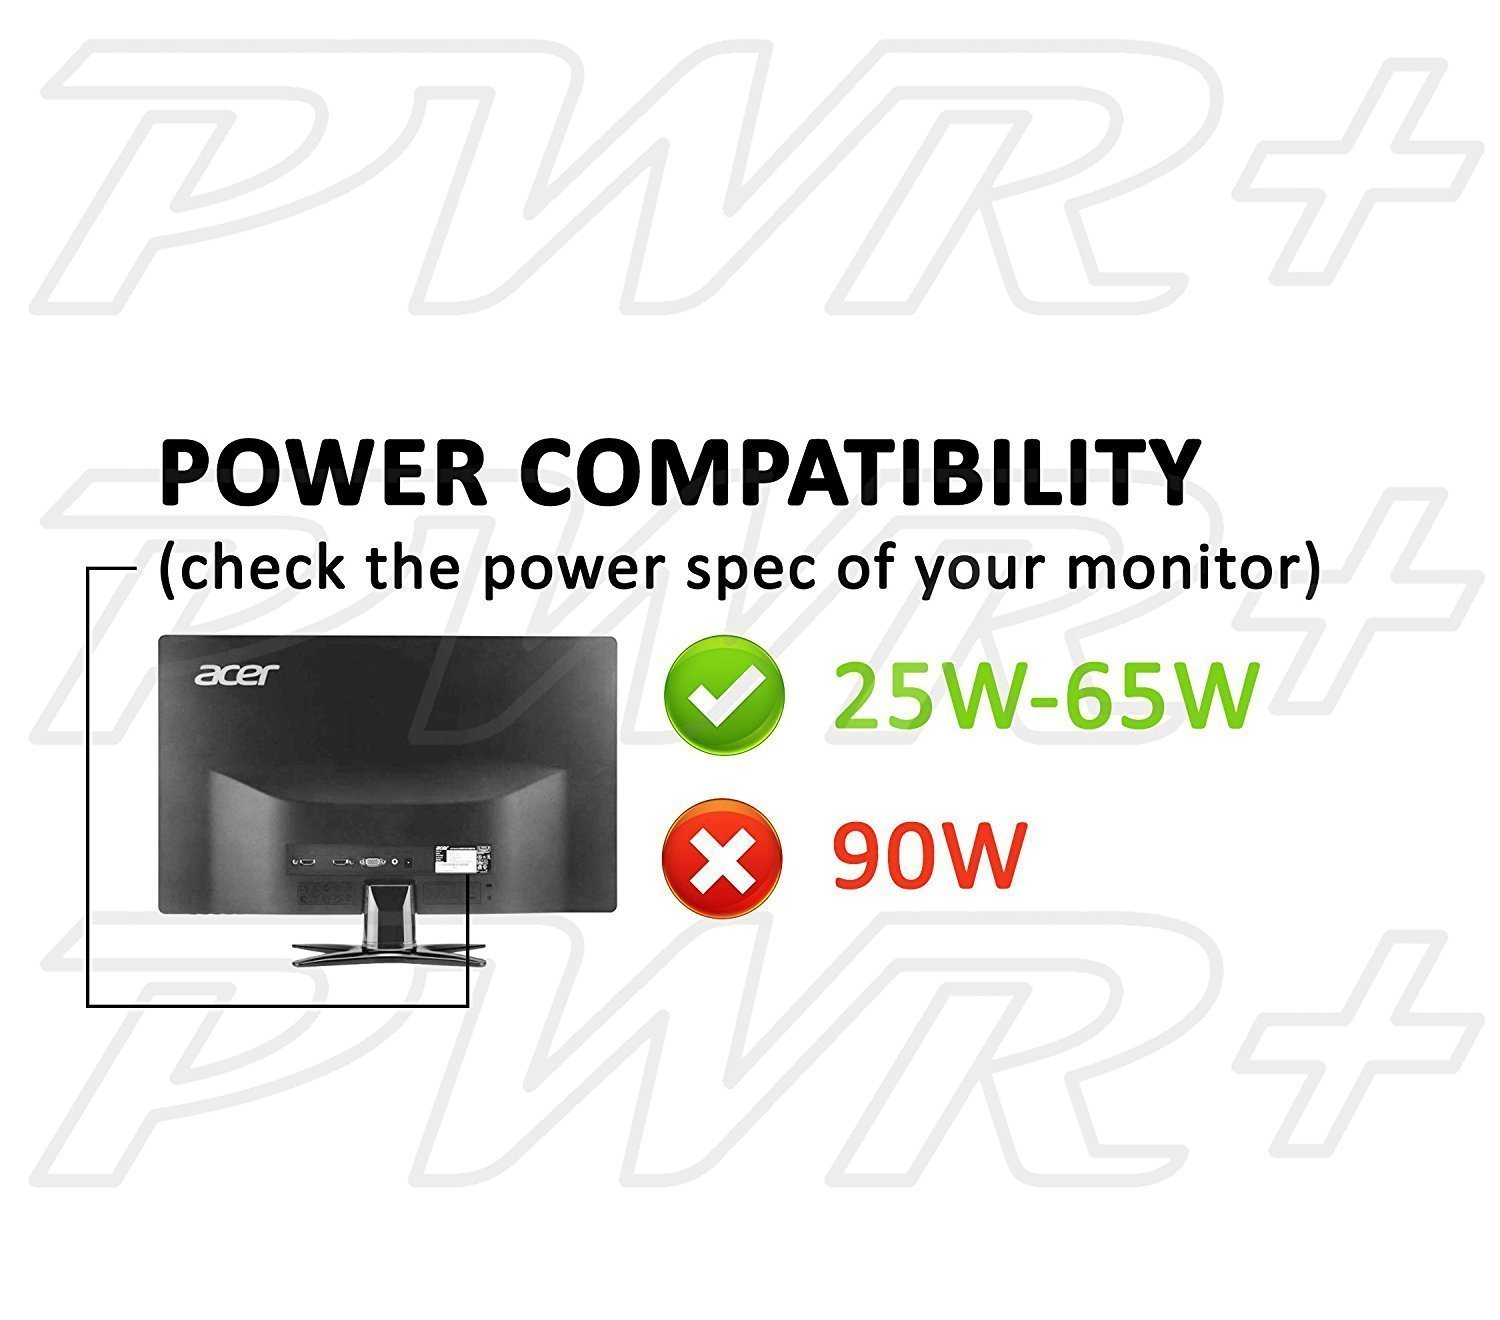 [UL Listed] Pwr+ 19V 65W Extra Long 12 Ft Power-Cord for Acer-Monitor H236HL T232HL R240HY G206HQLBD GN246NL G226HQL G246HL G276HL S200HQL S231HL S241HL S200HL Charger-AC-Adapter Power-Supply by PWR+ (Image #4)